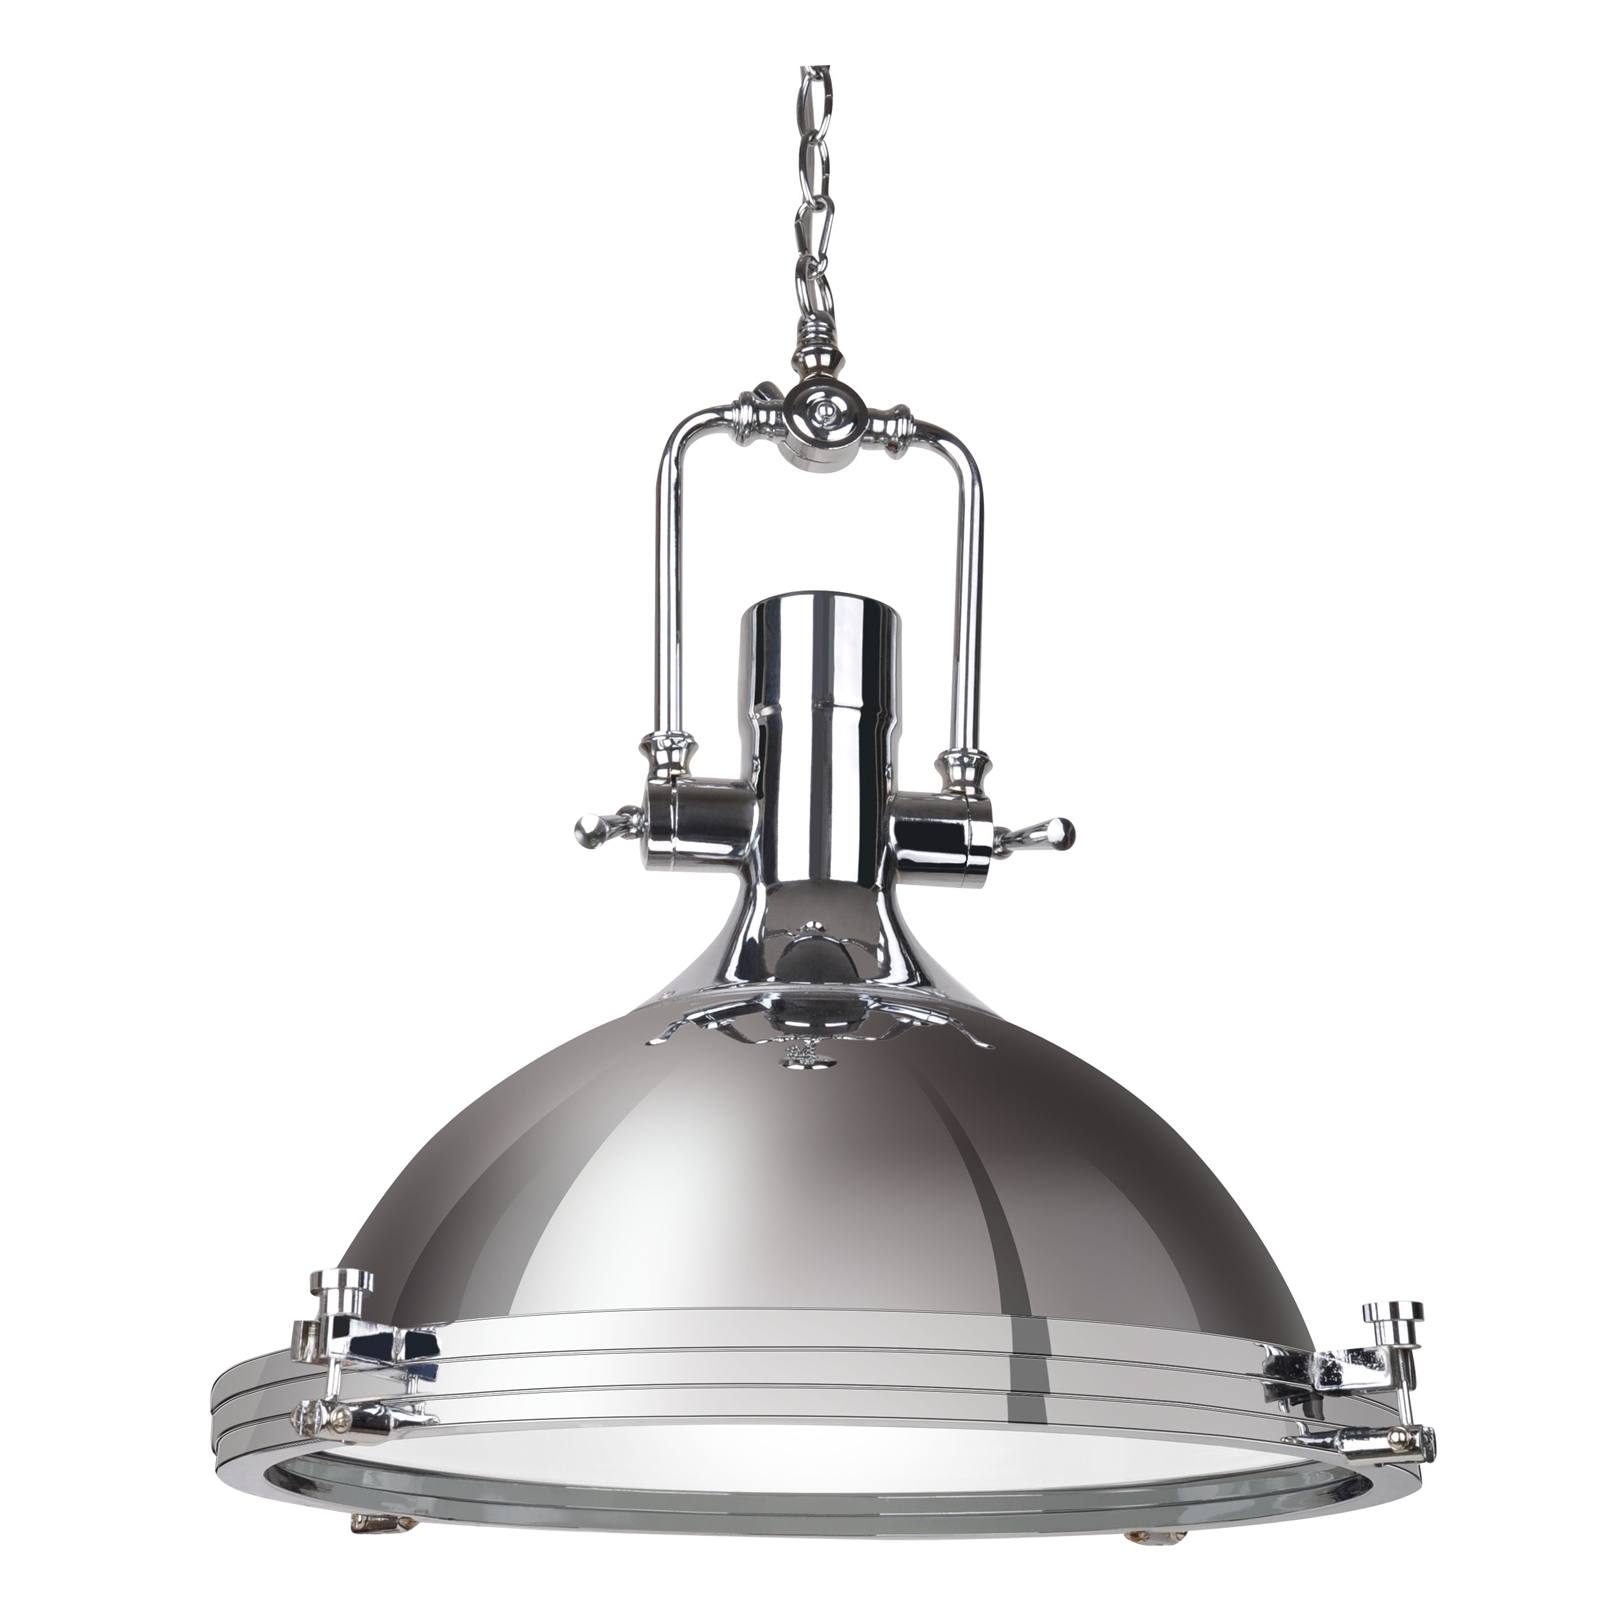 Find Cafe Lighting 40Cm 240V Turner Pendant Light – Chrome At Throughout Outdoor Ceiling Lights At Bunnings (#6 of 15)